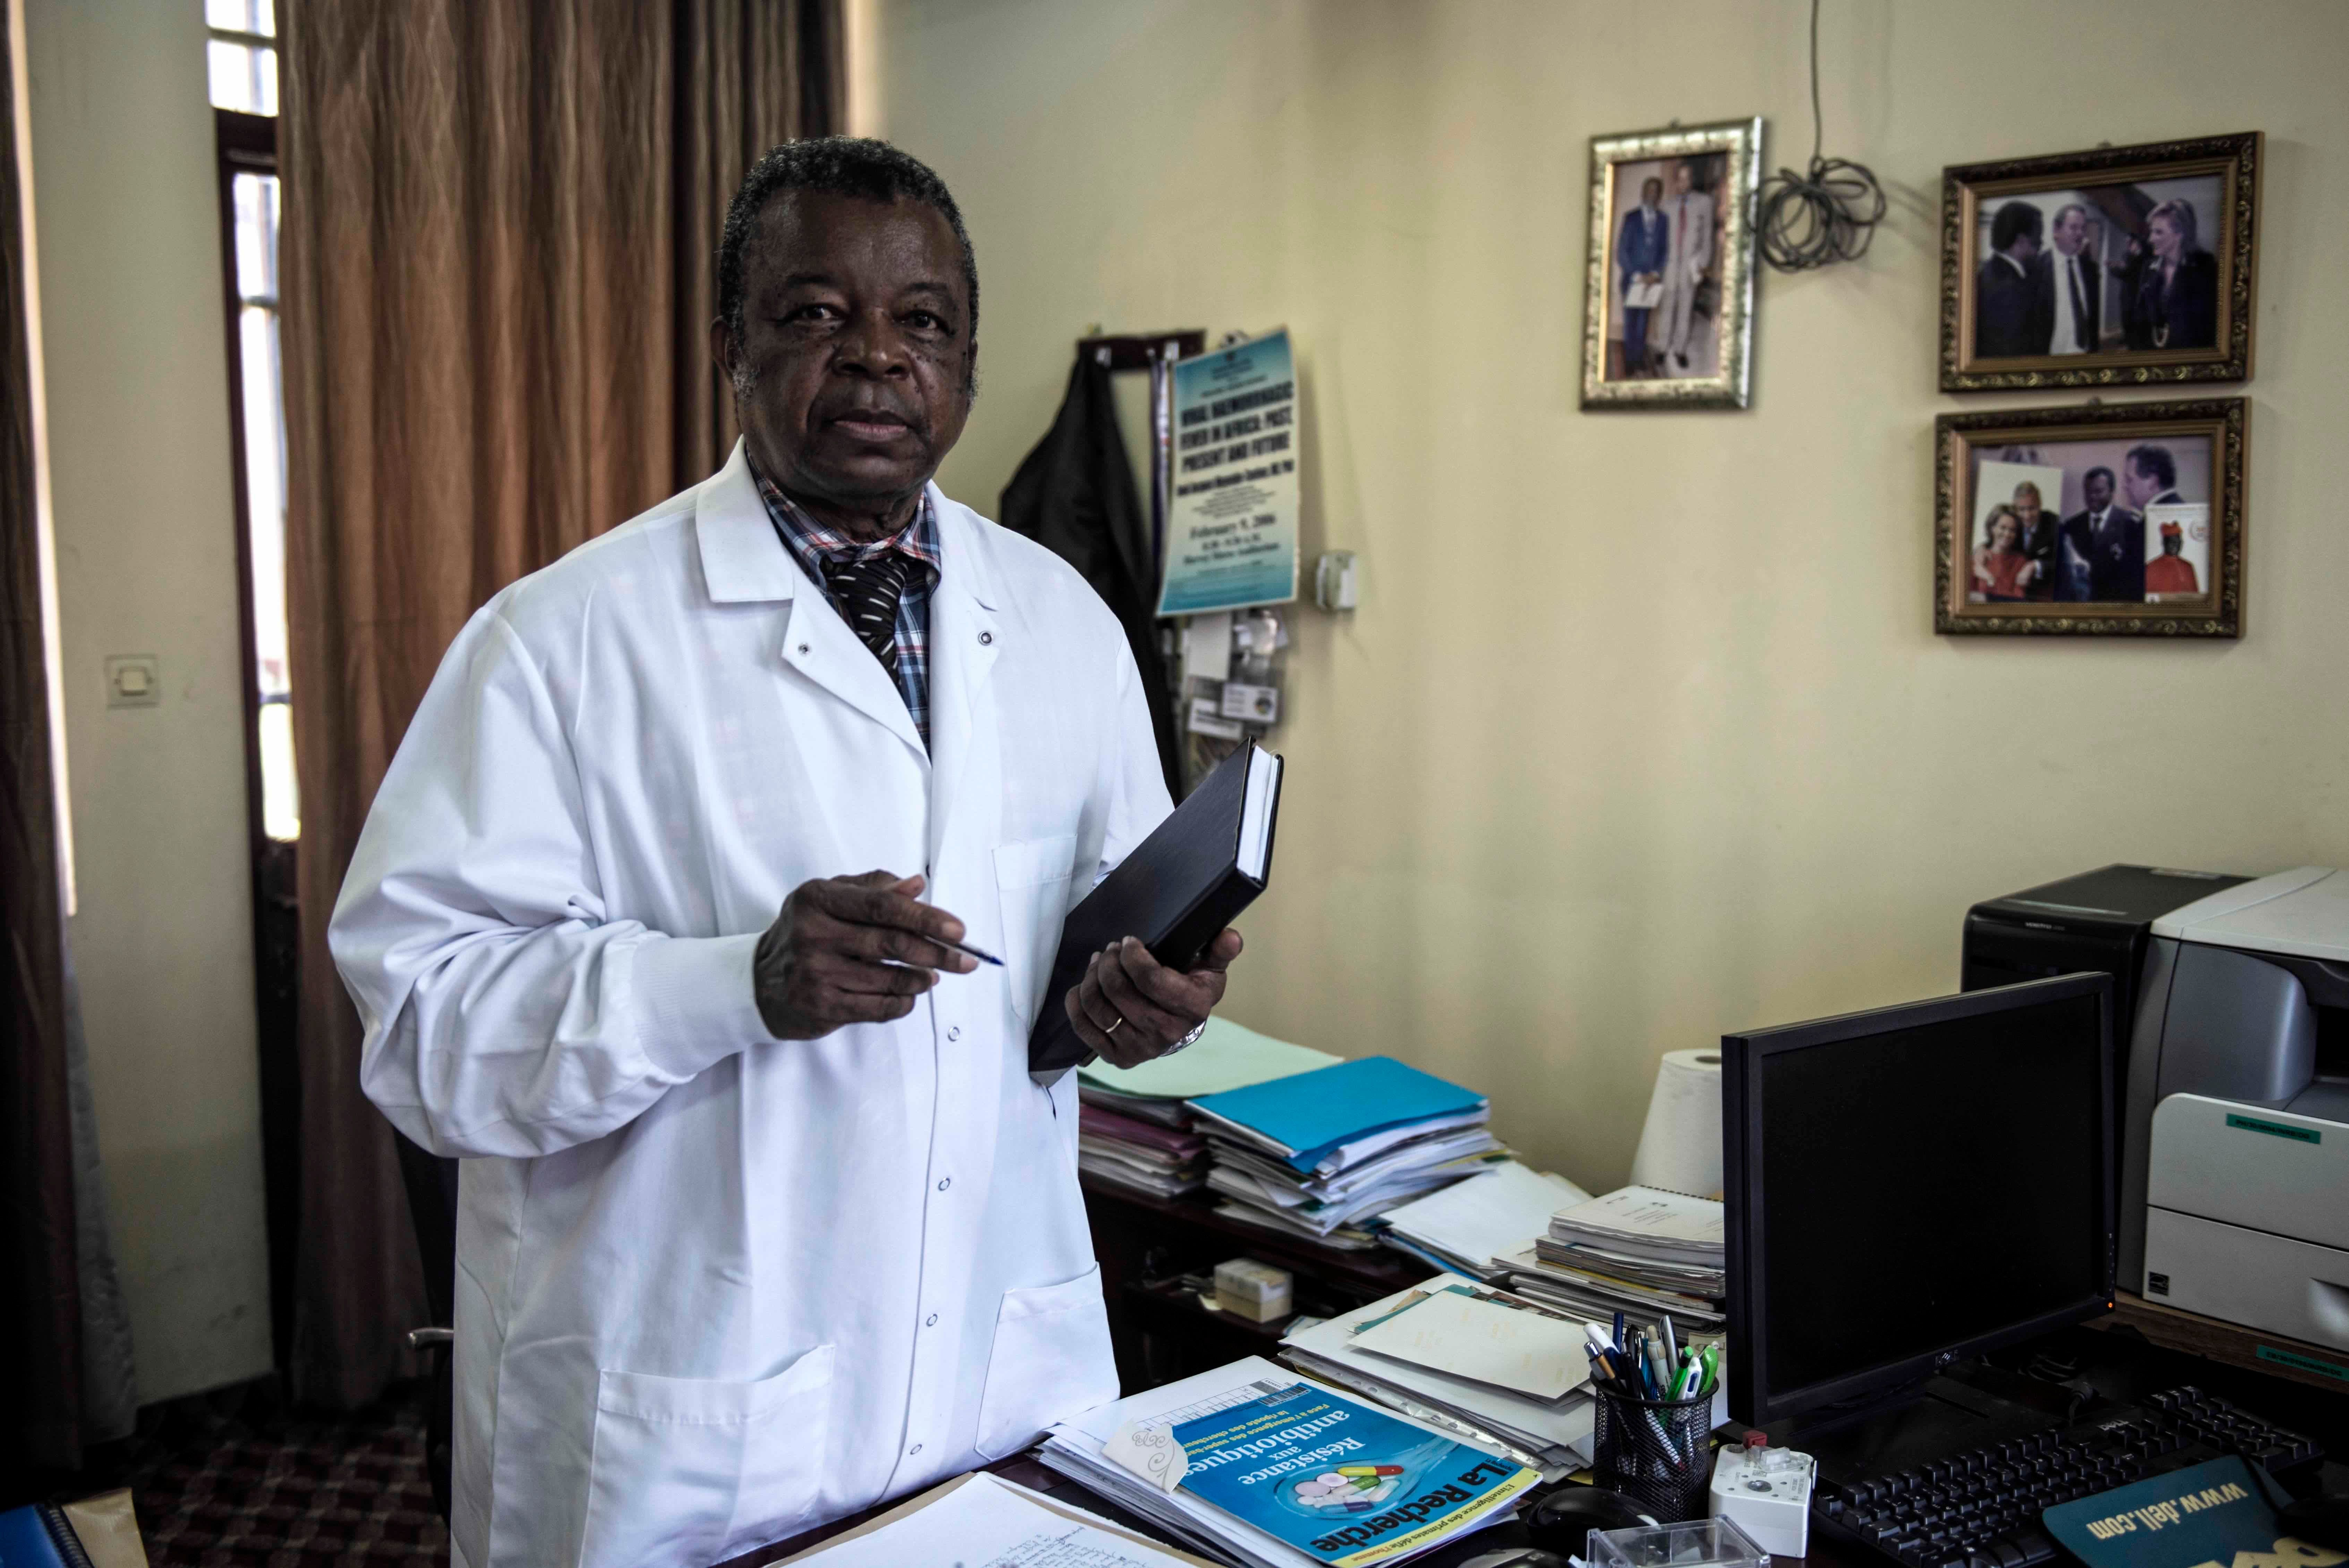 Dr. Jean-Jacques Muyembe-Tamfum treated the first cases of Ebola before the disease even had a name.